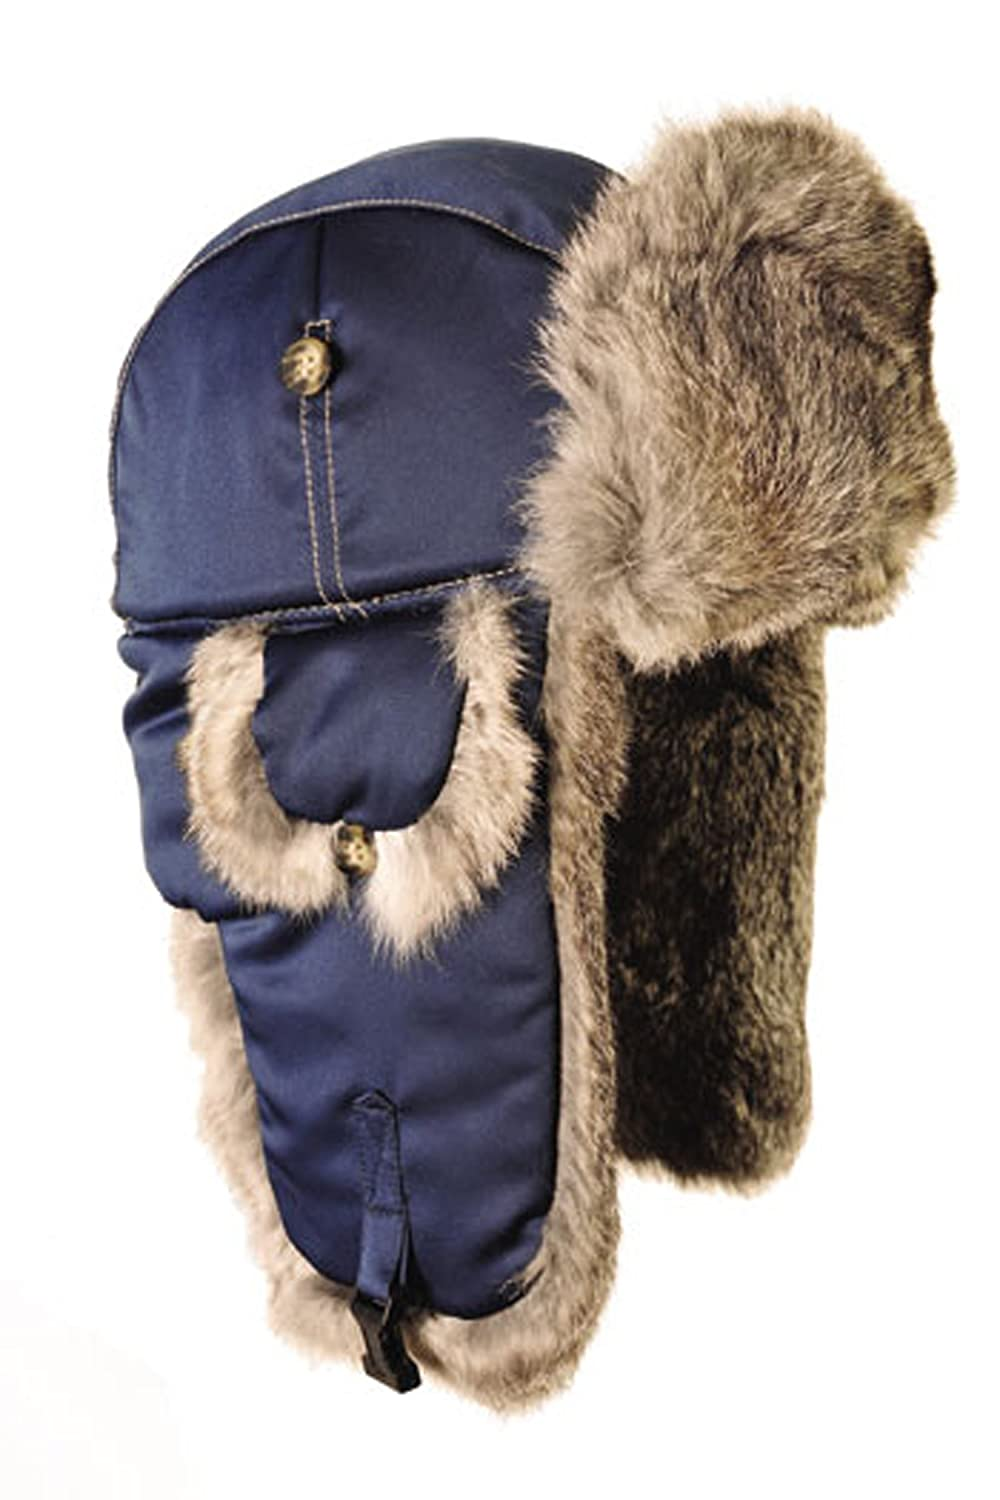 Mad Bomber Supplex Hat with Fur 304BLK-P